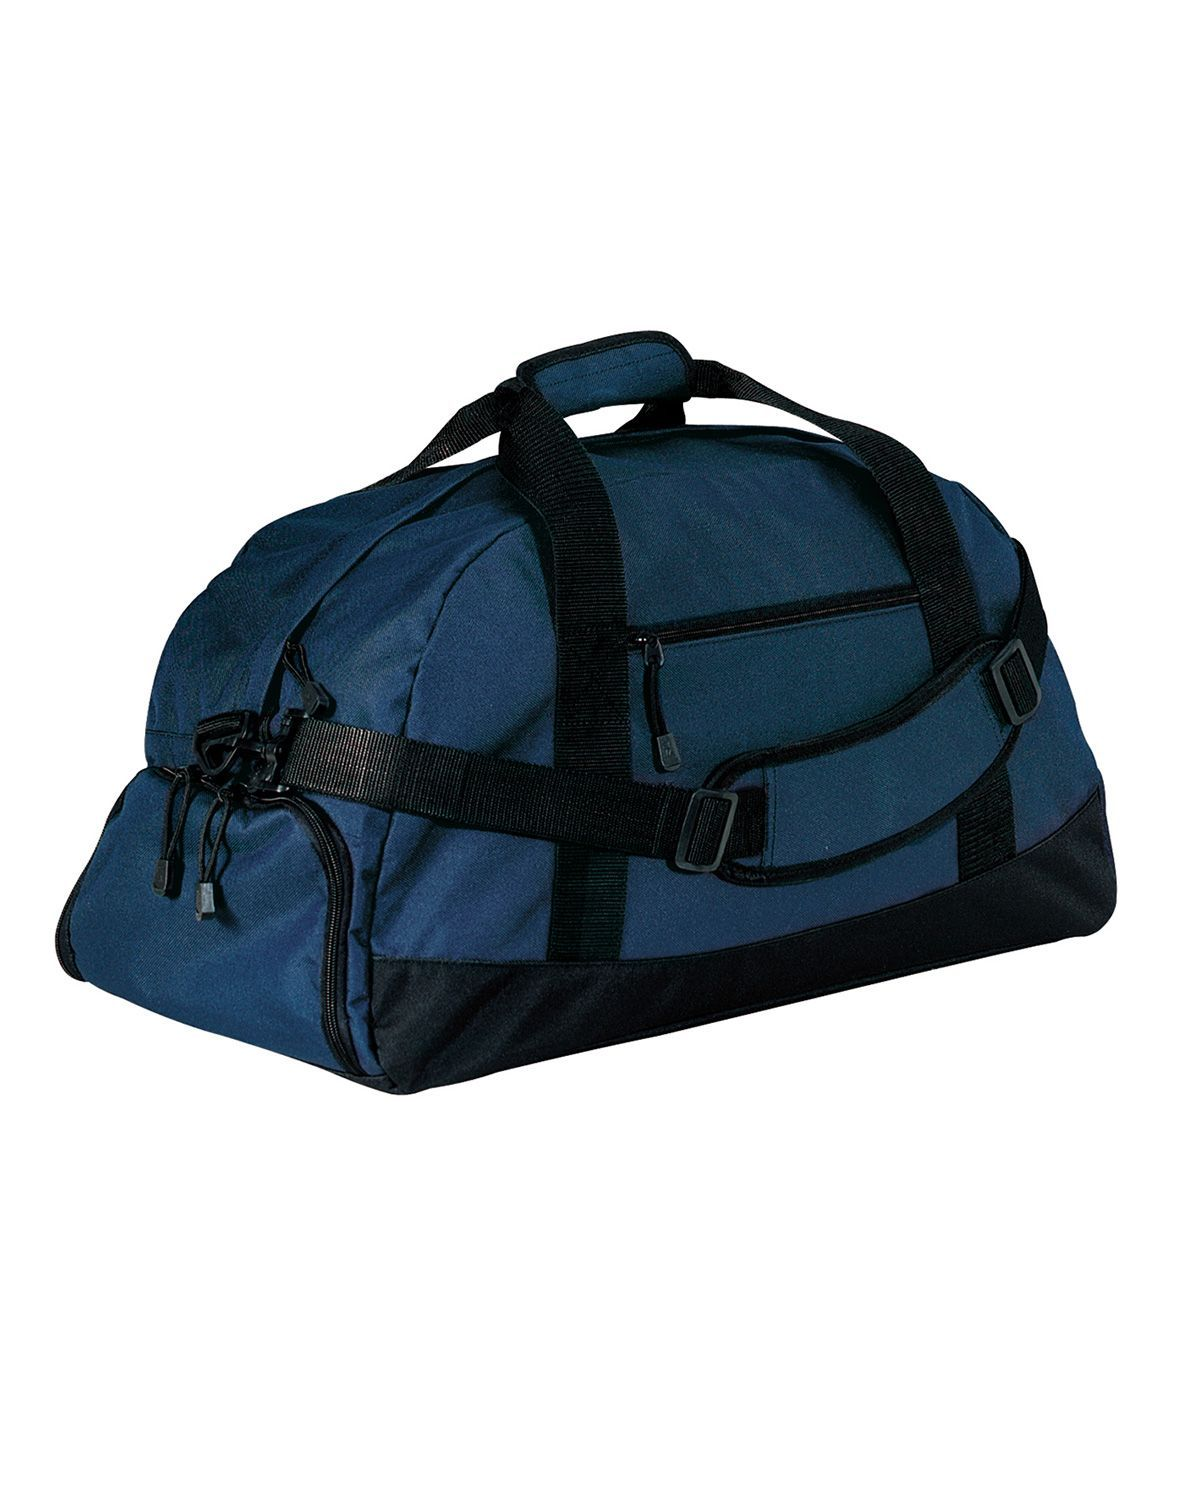 c4f955085f94 Buy Large Duffel Bag